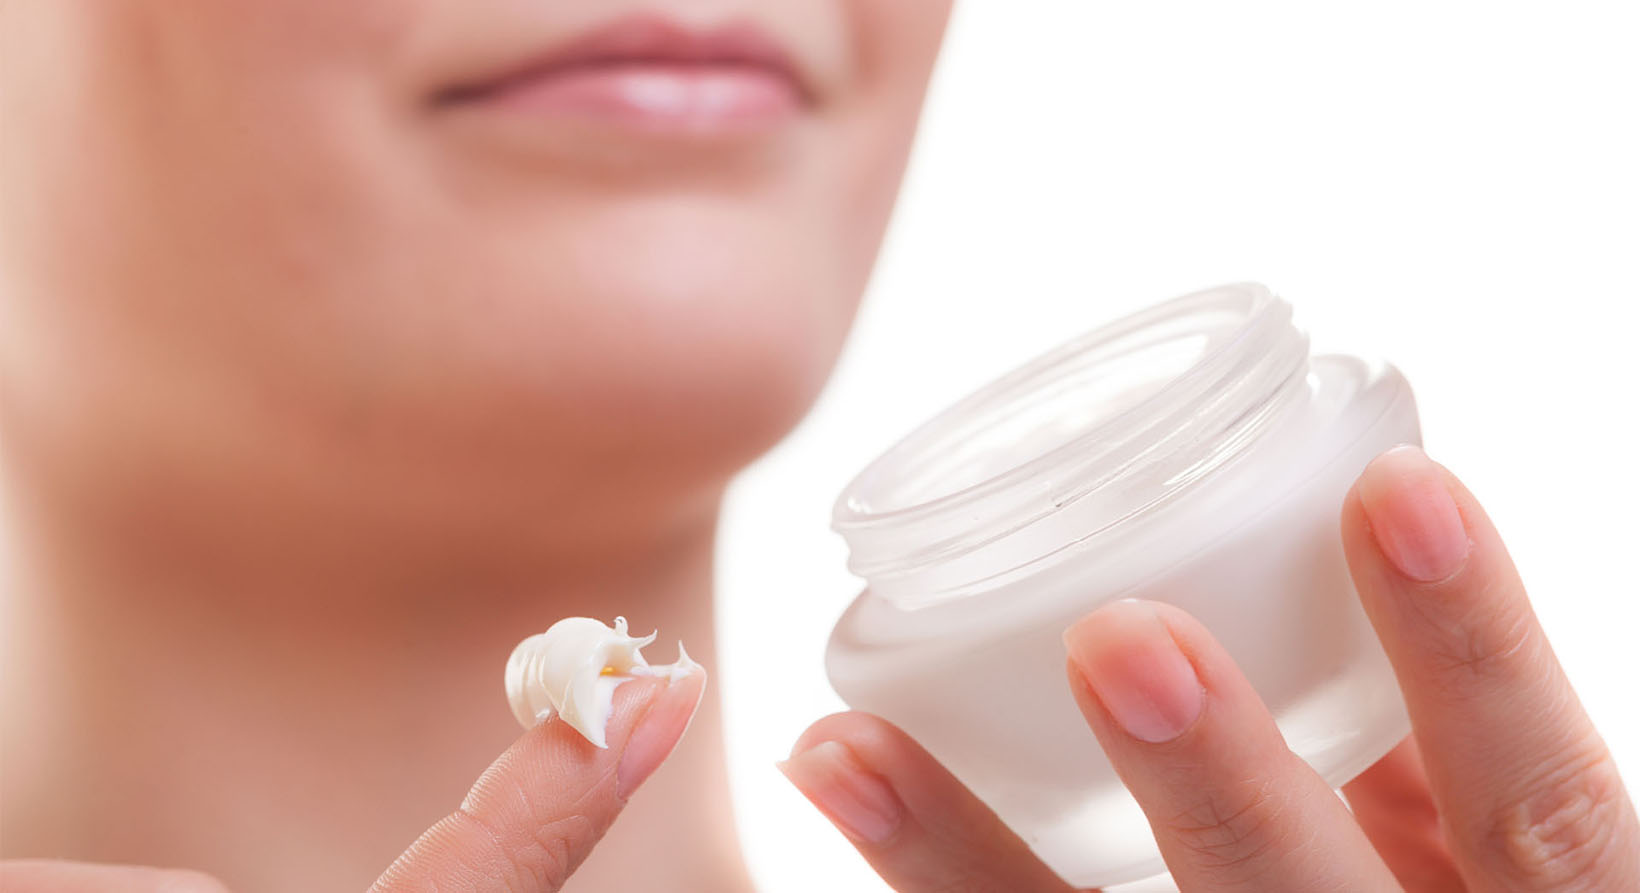 Do Prescription Skin Care Products Really Work Better?